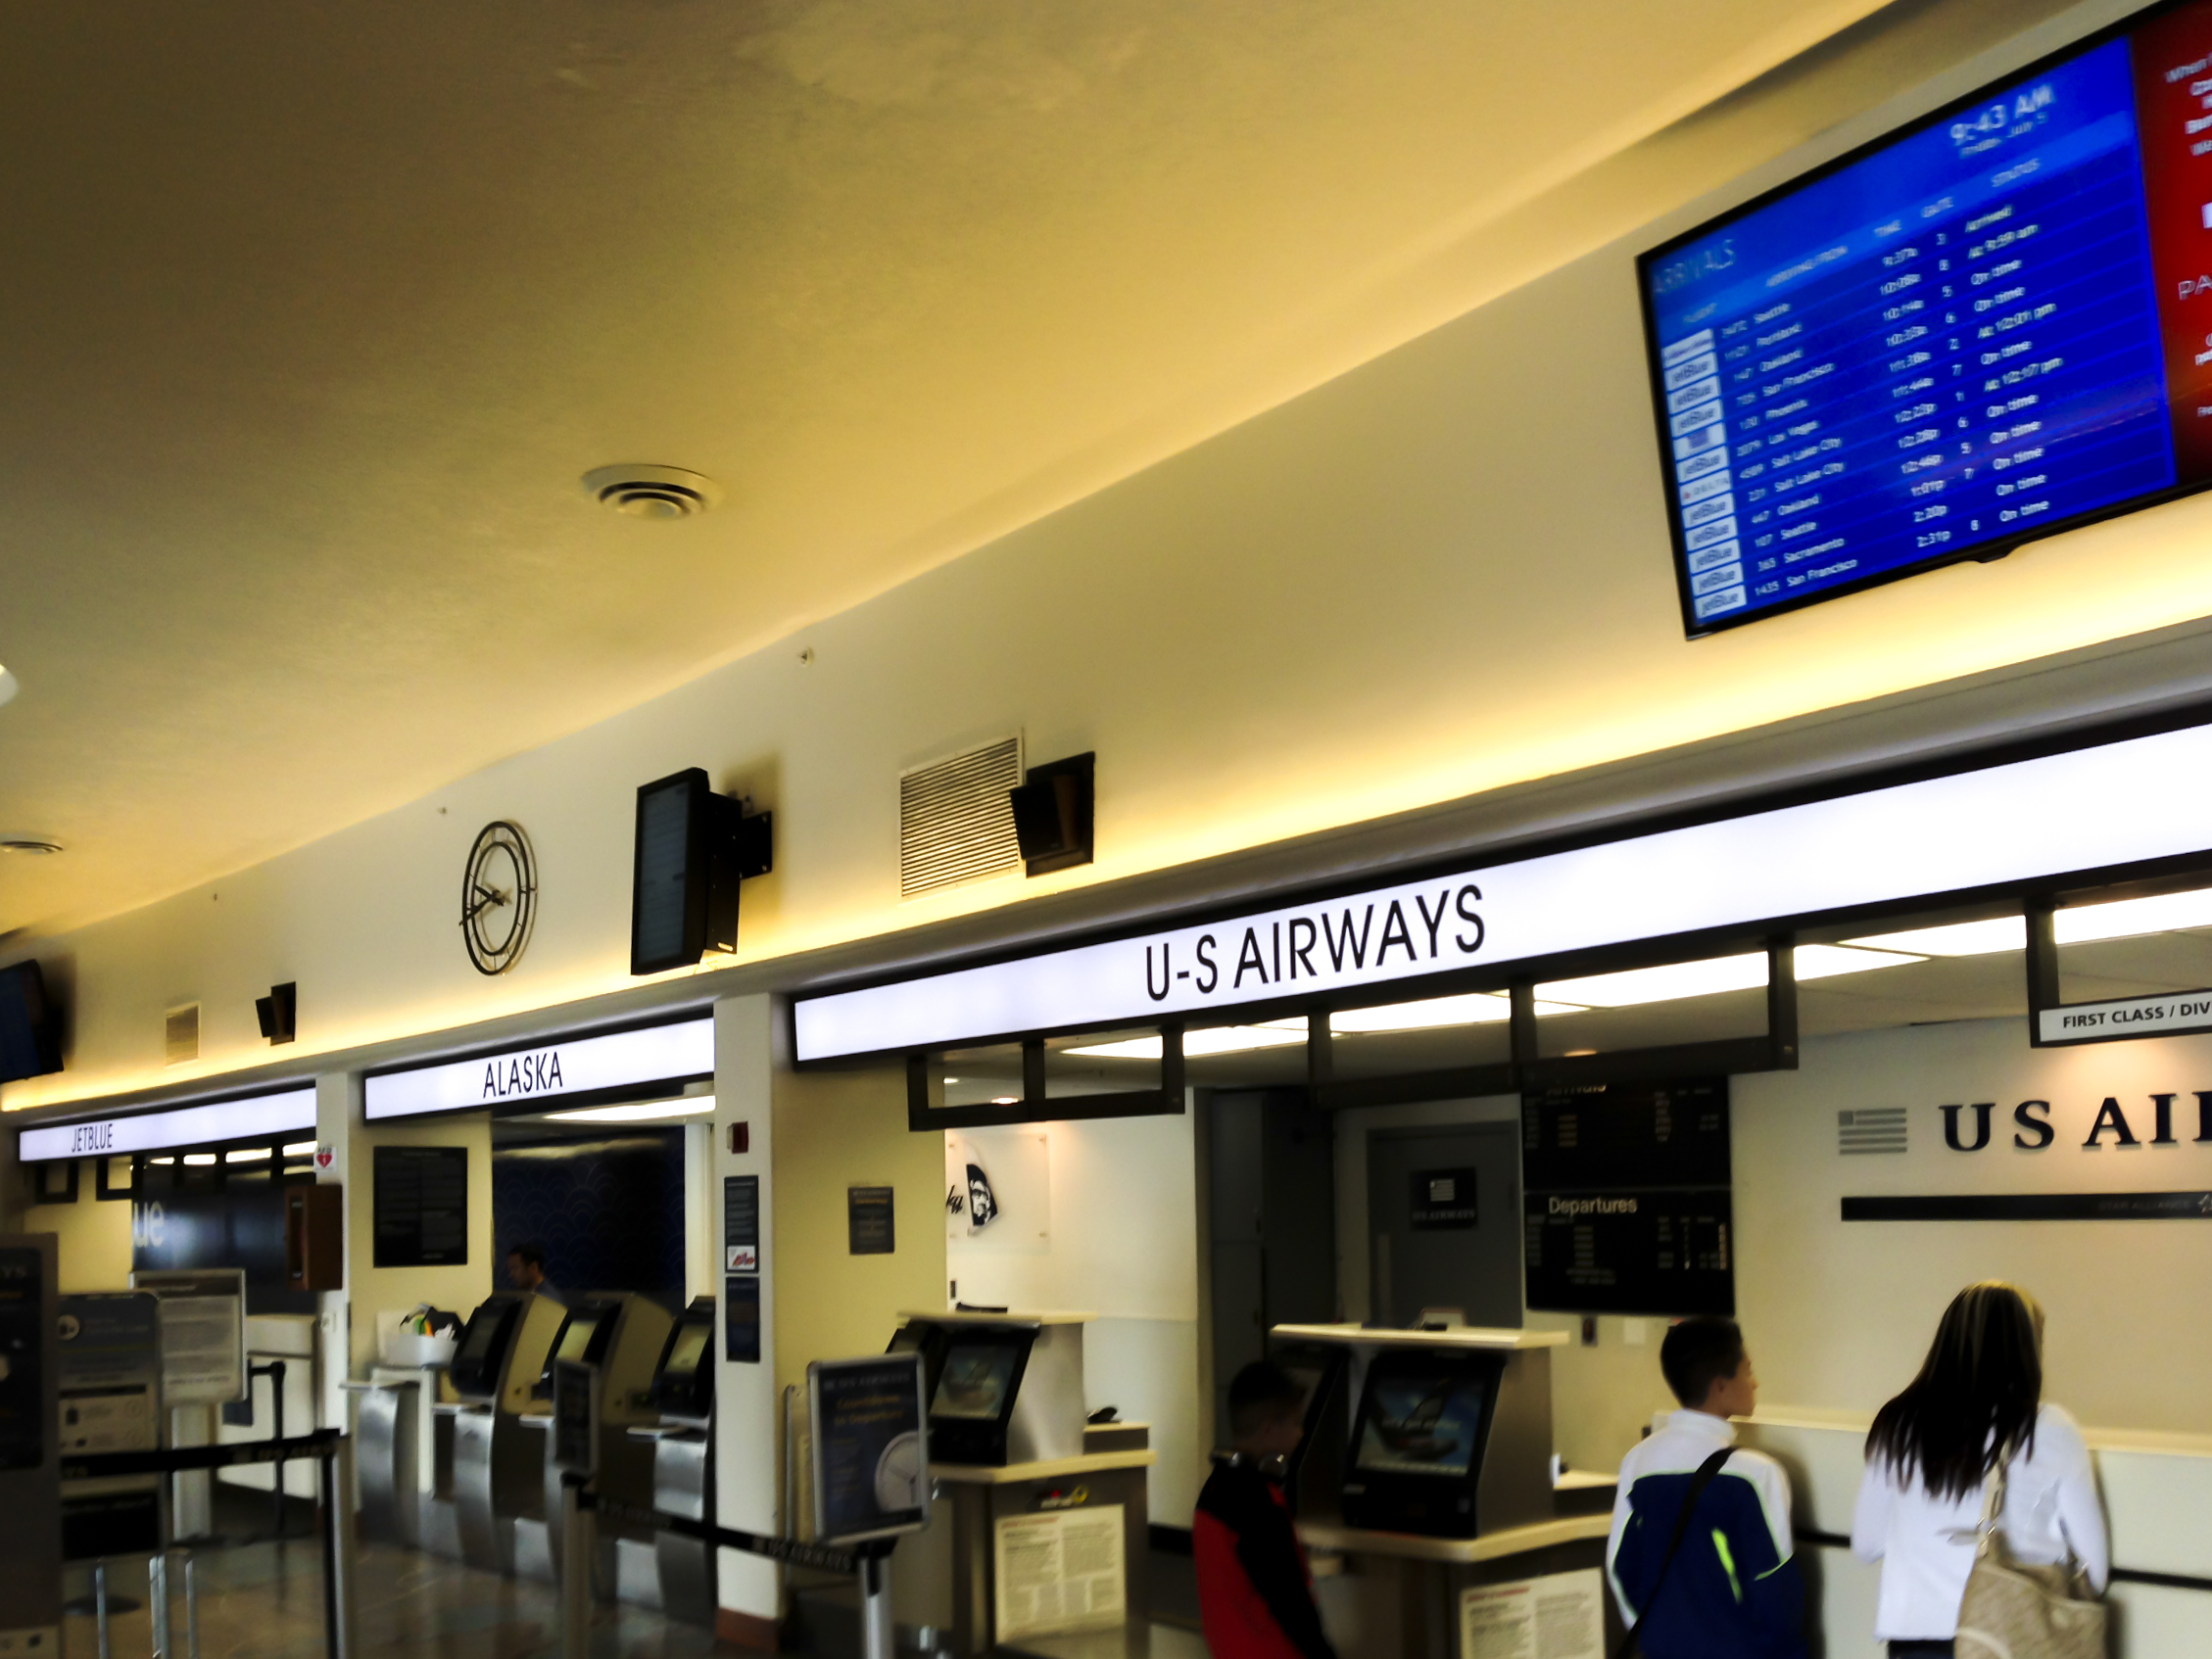 Long beach airport terminal LED install by Flexfire LEDs